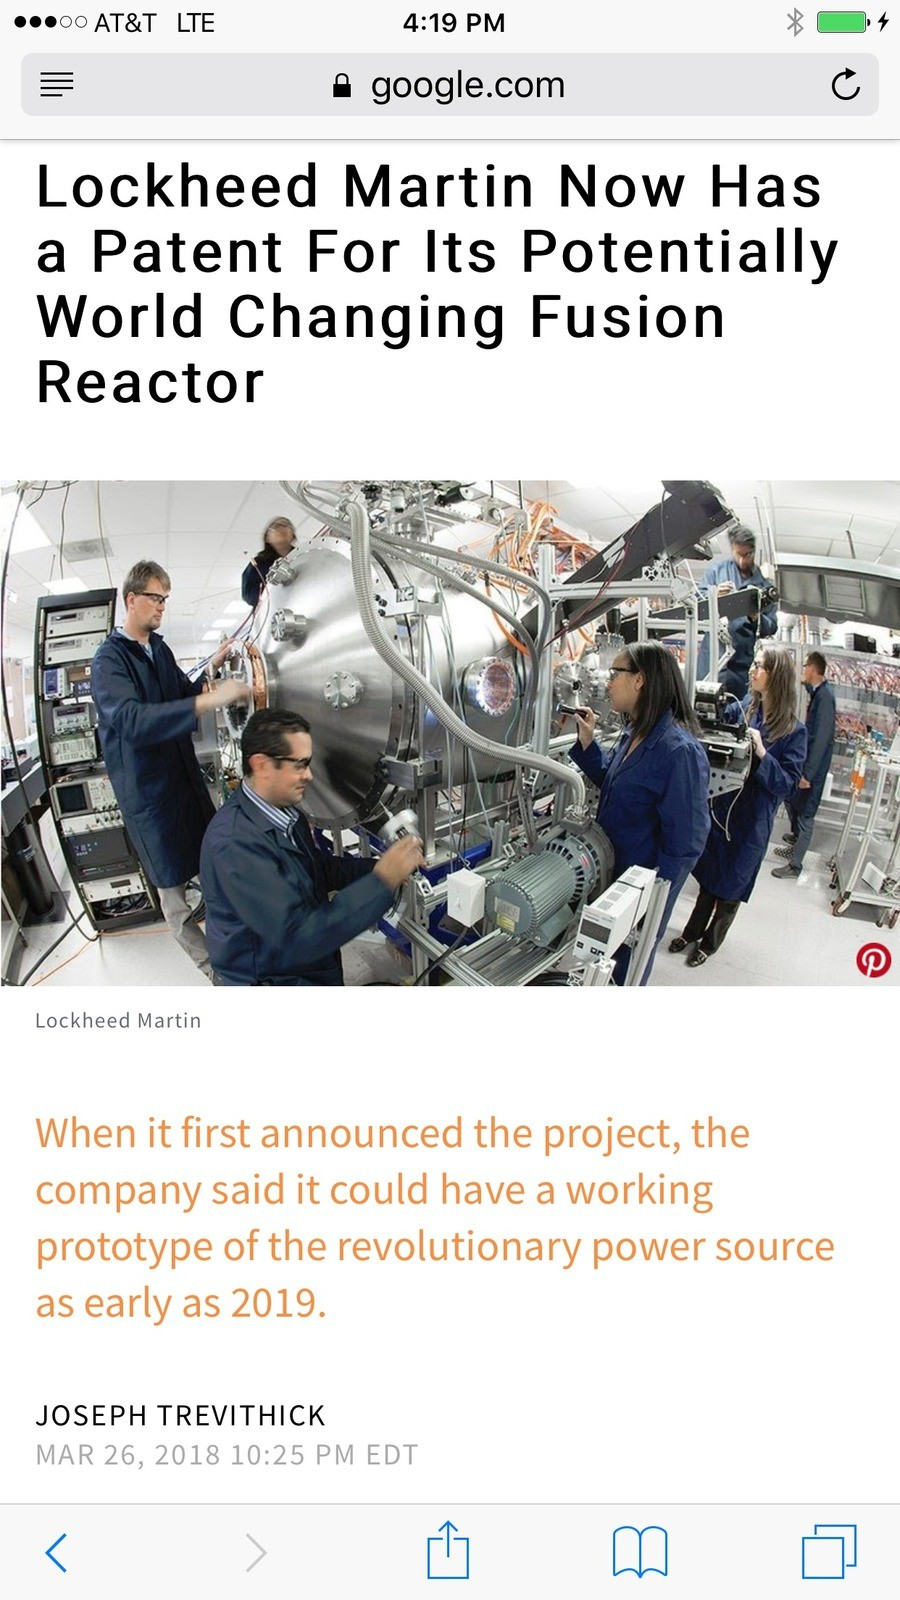 The Future. INB4: Breaking news, today Lockheed Martin's head of advanced science division Robbie Mandelbaum announced the fusion reactor project has been termi